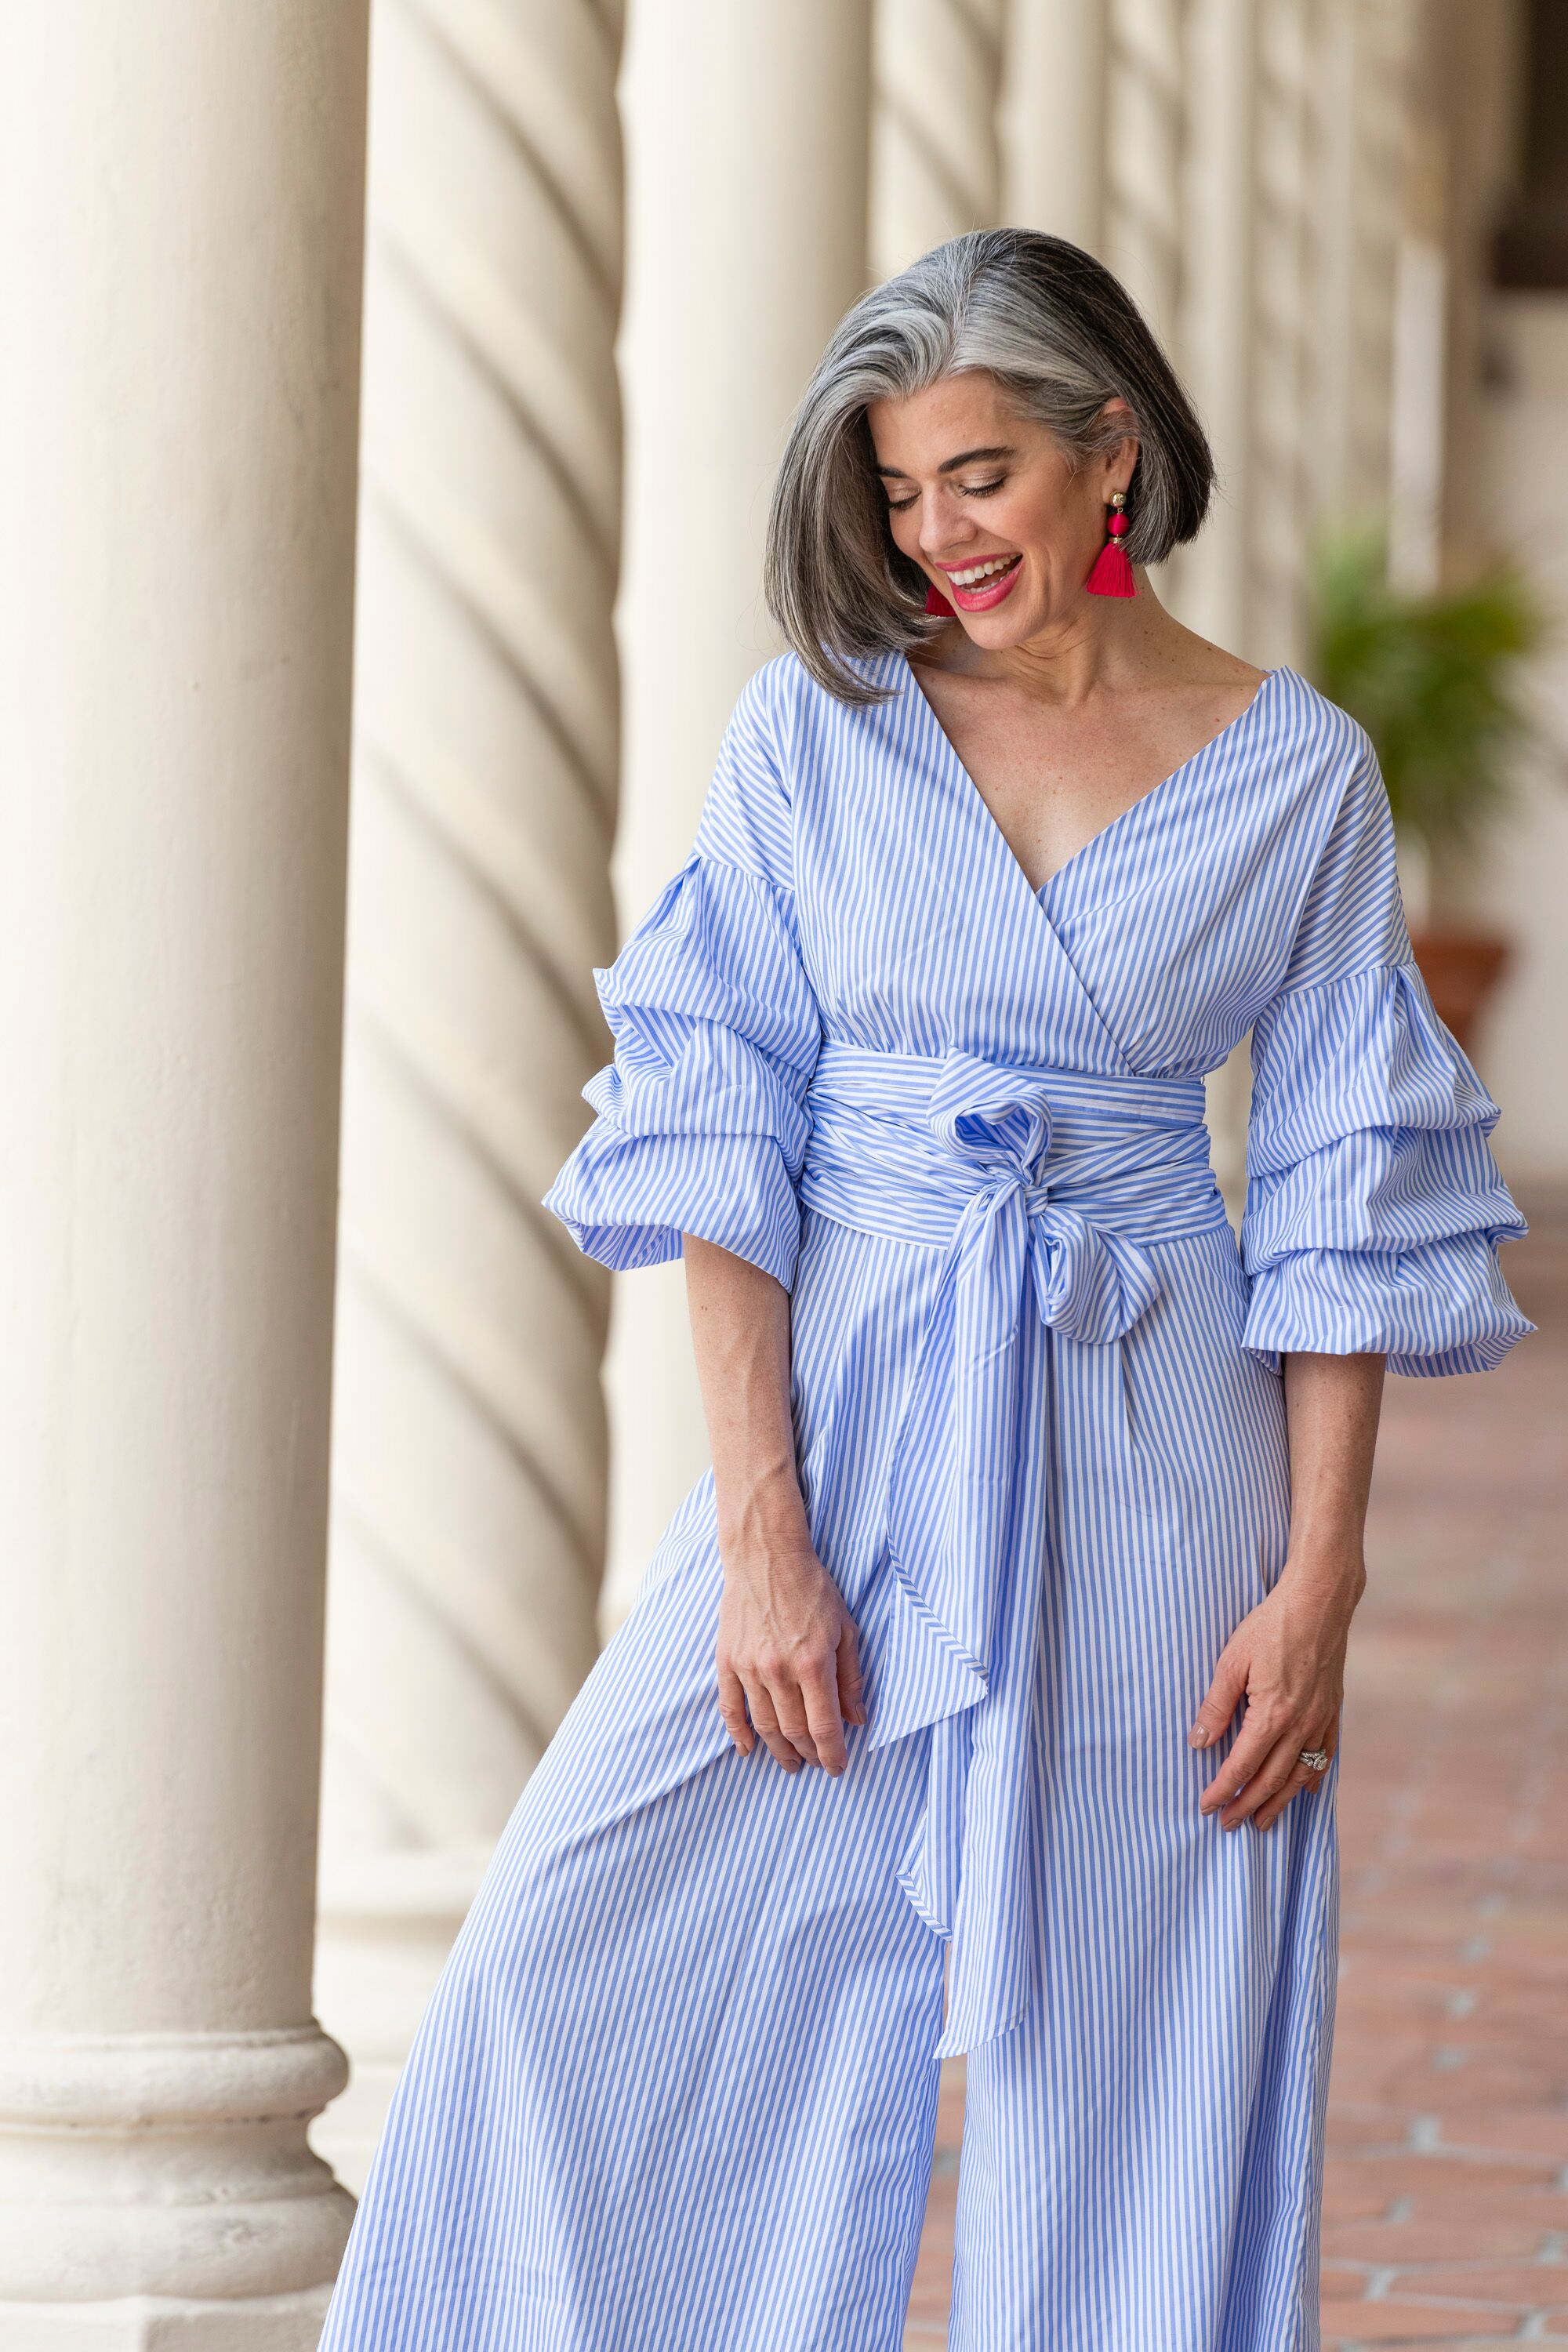 The Best Jumpsuits for Summer